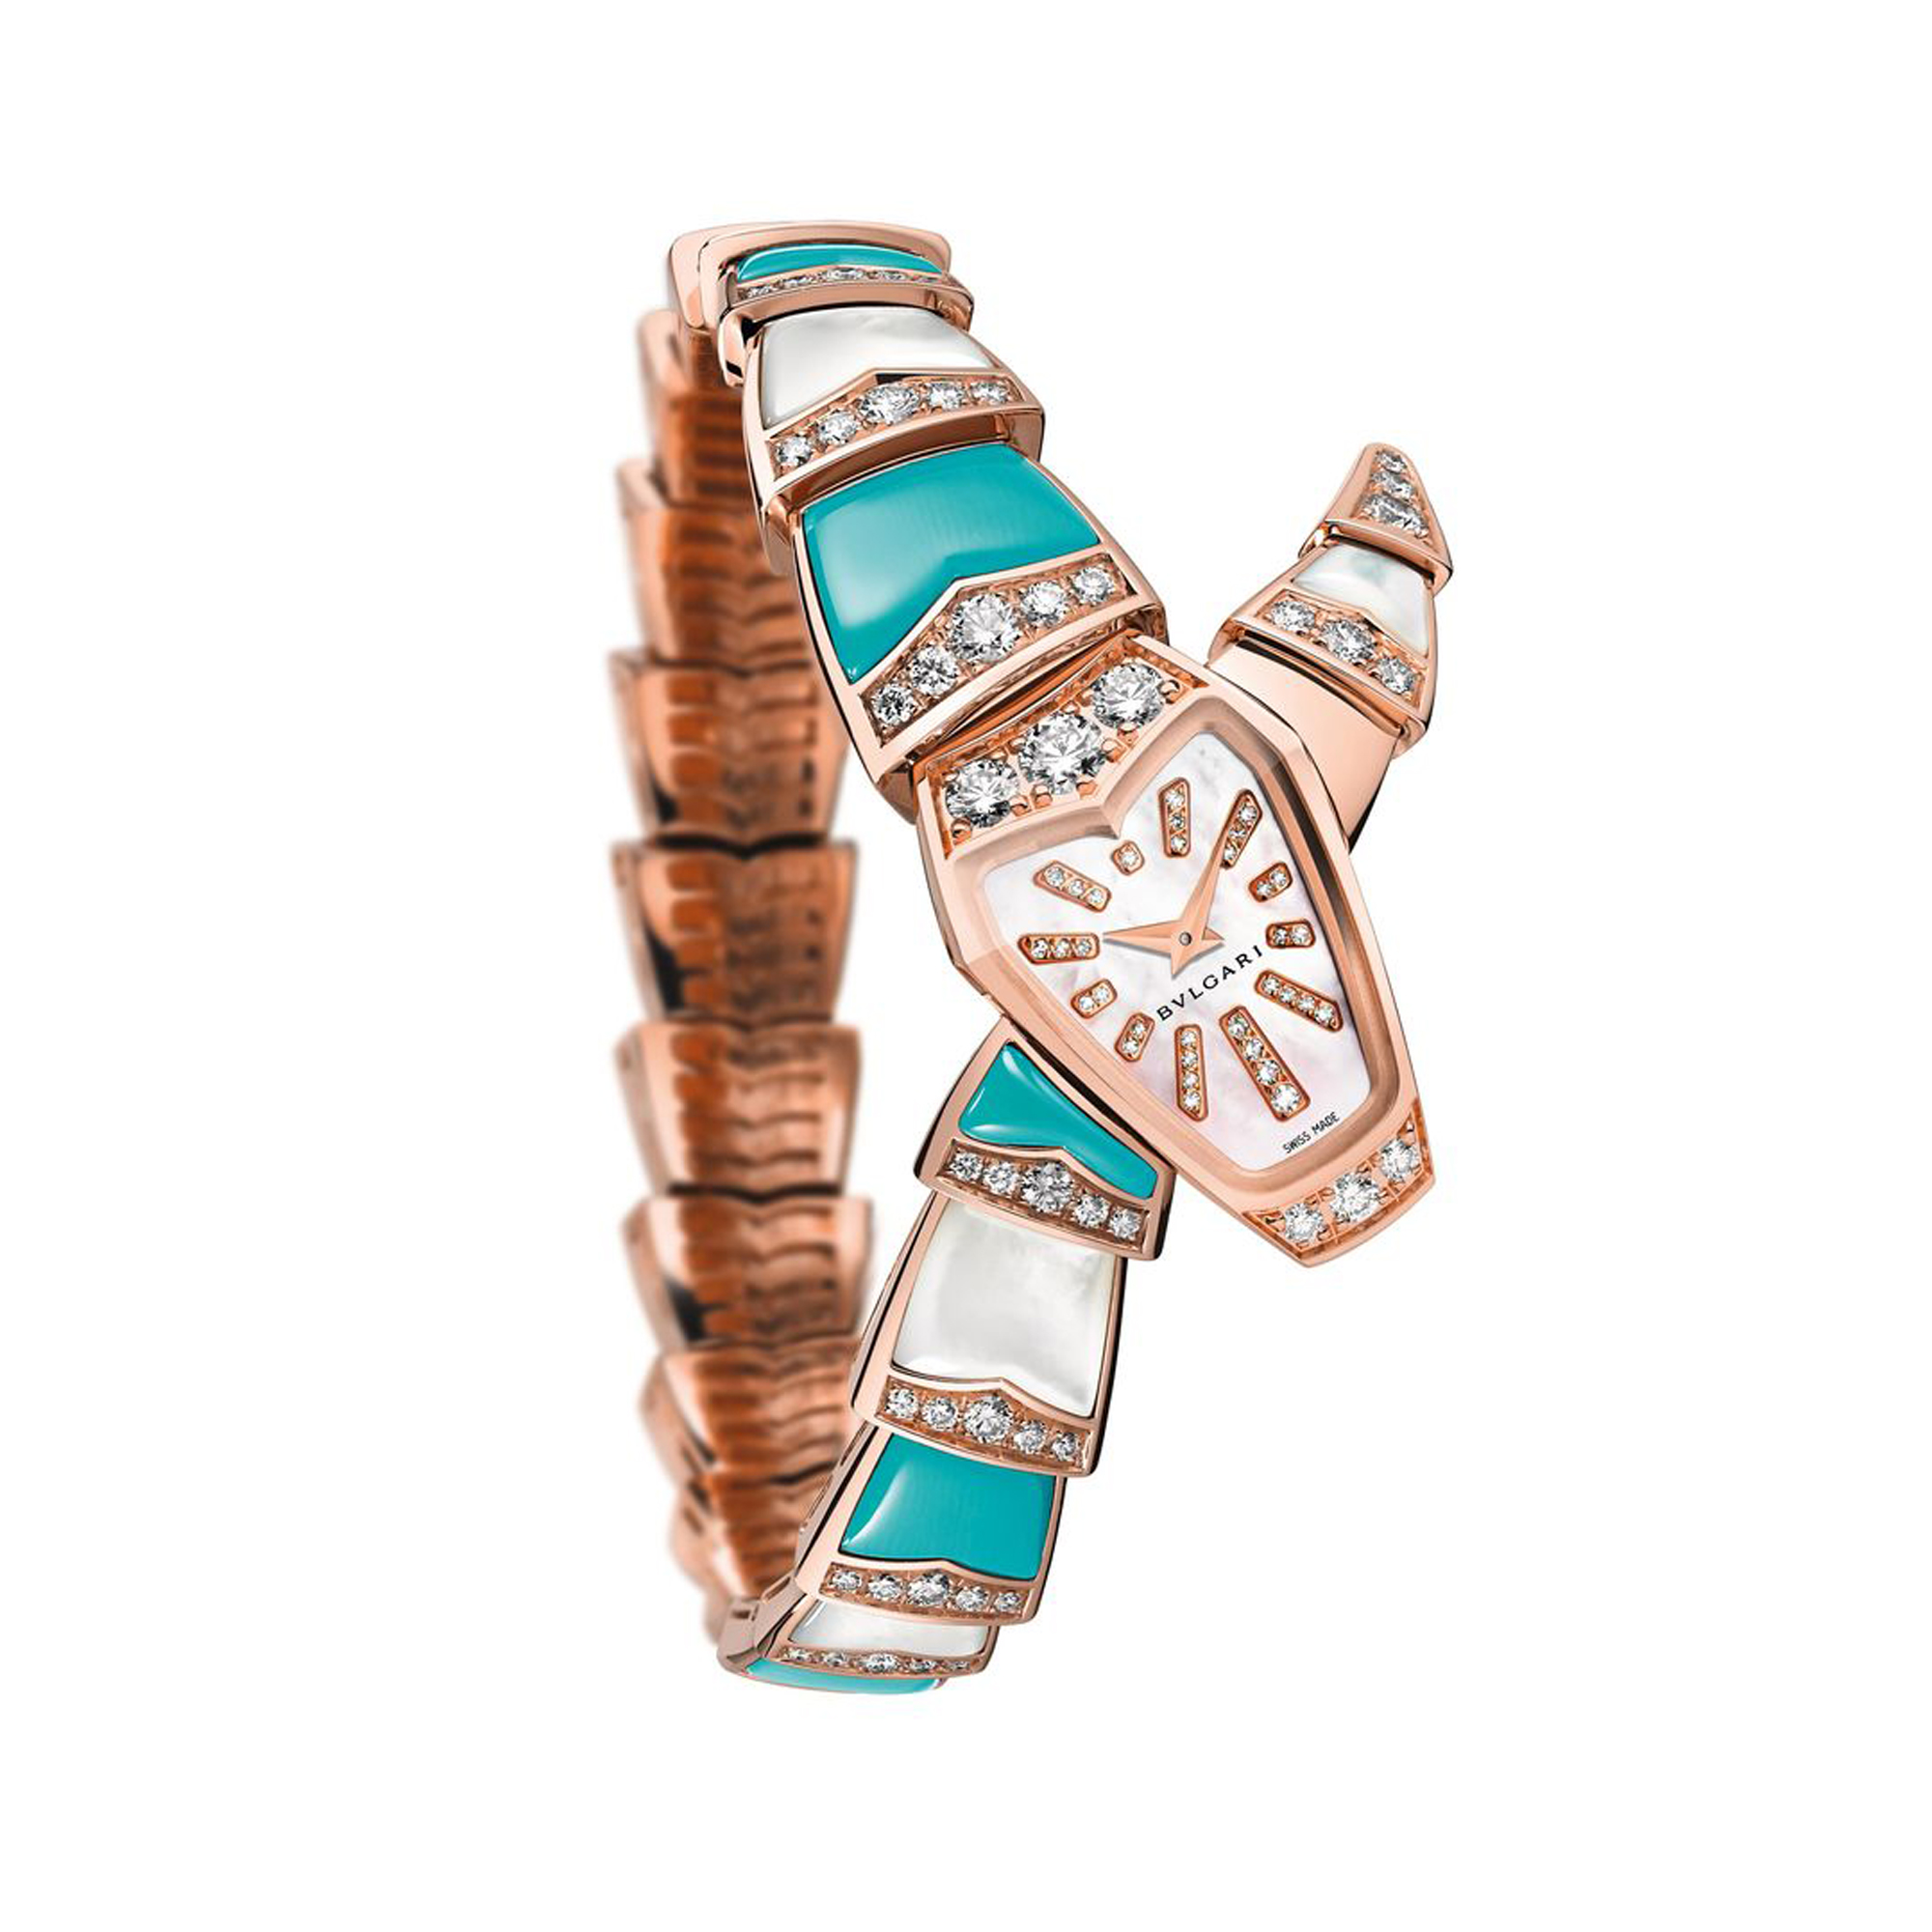 alt:textBulgari Serpenti 18k Turquoise and Mother of Pearl Diamond Watch